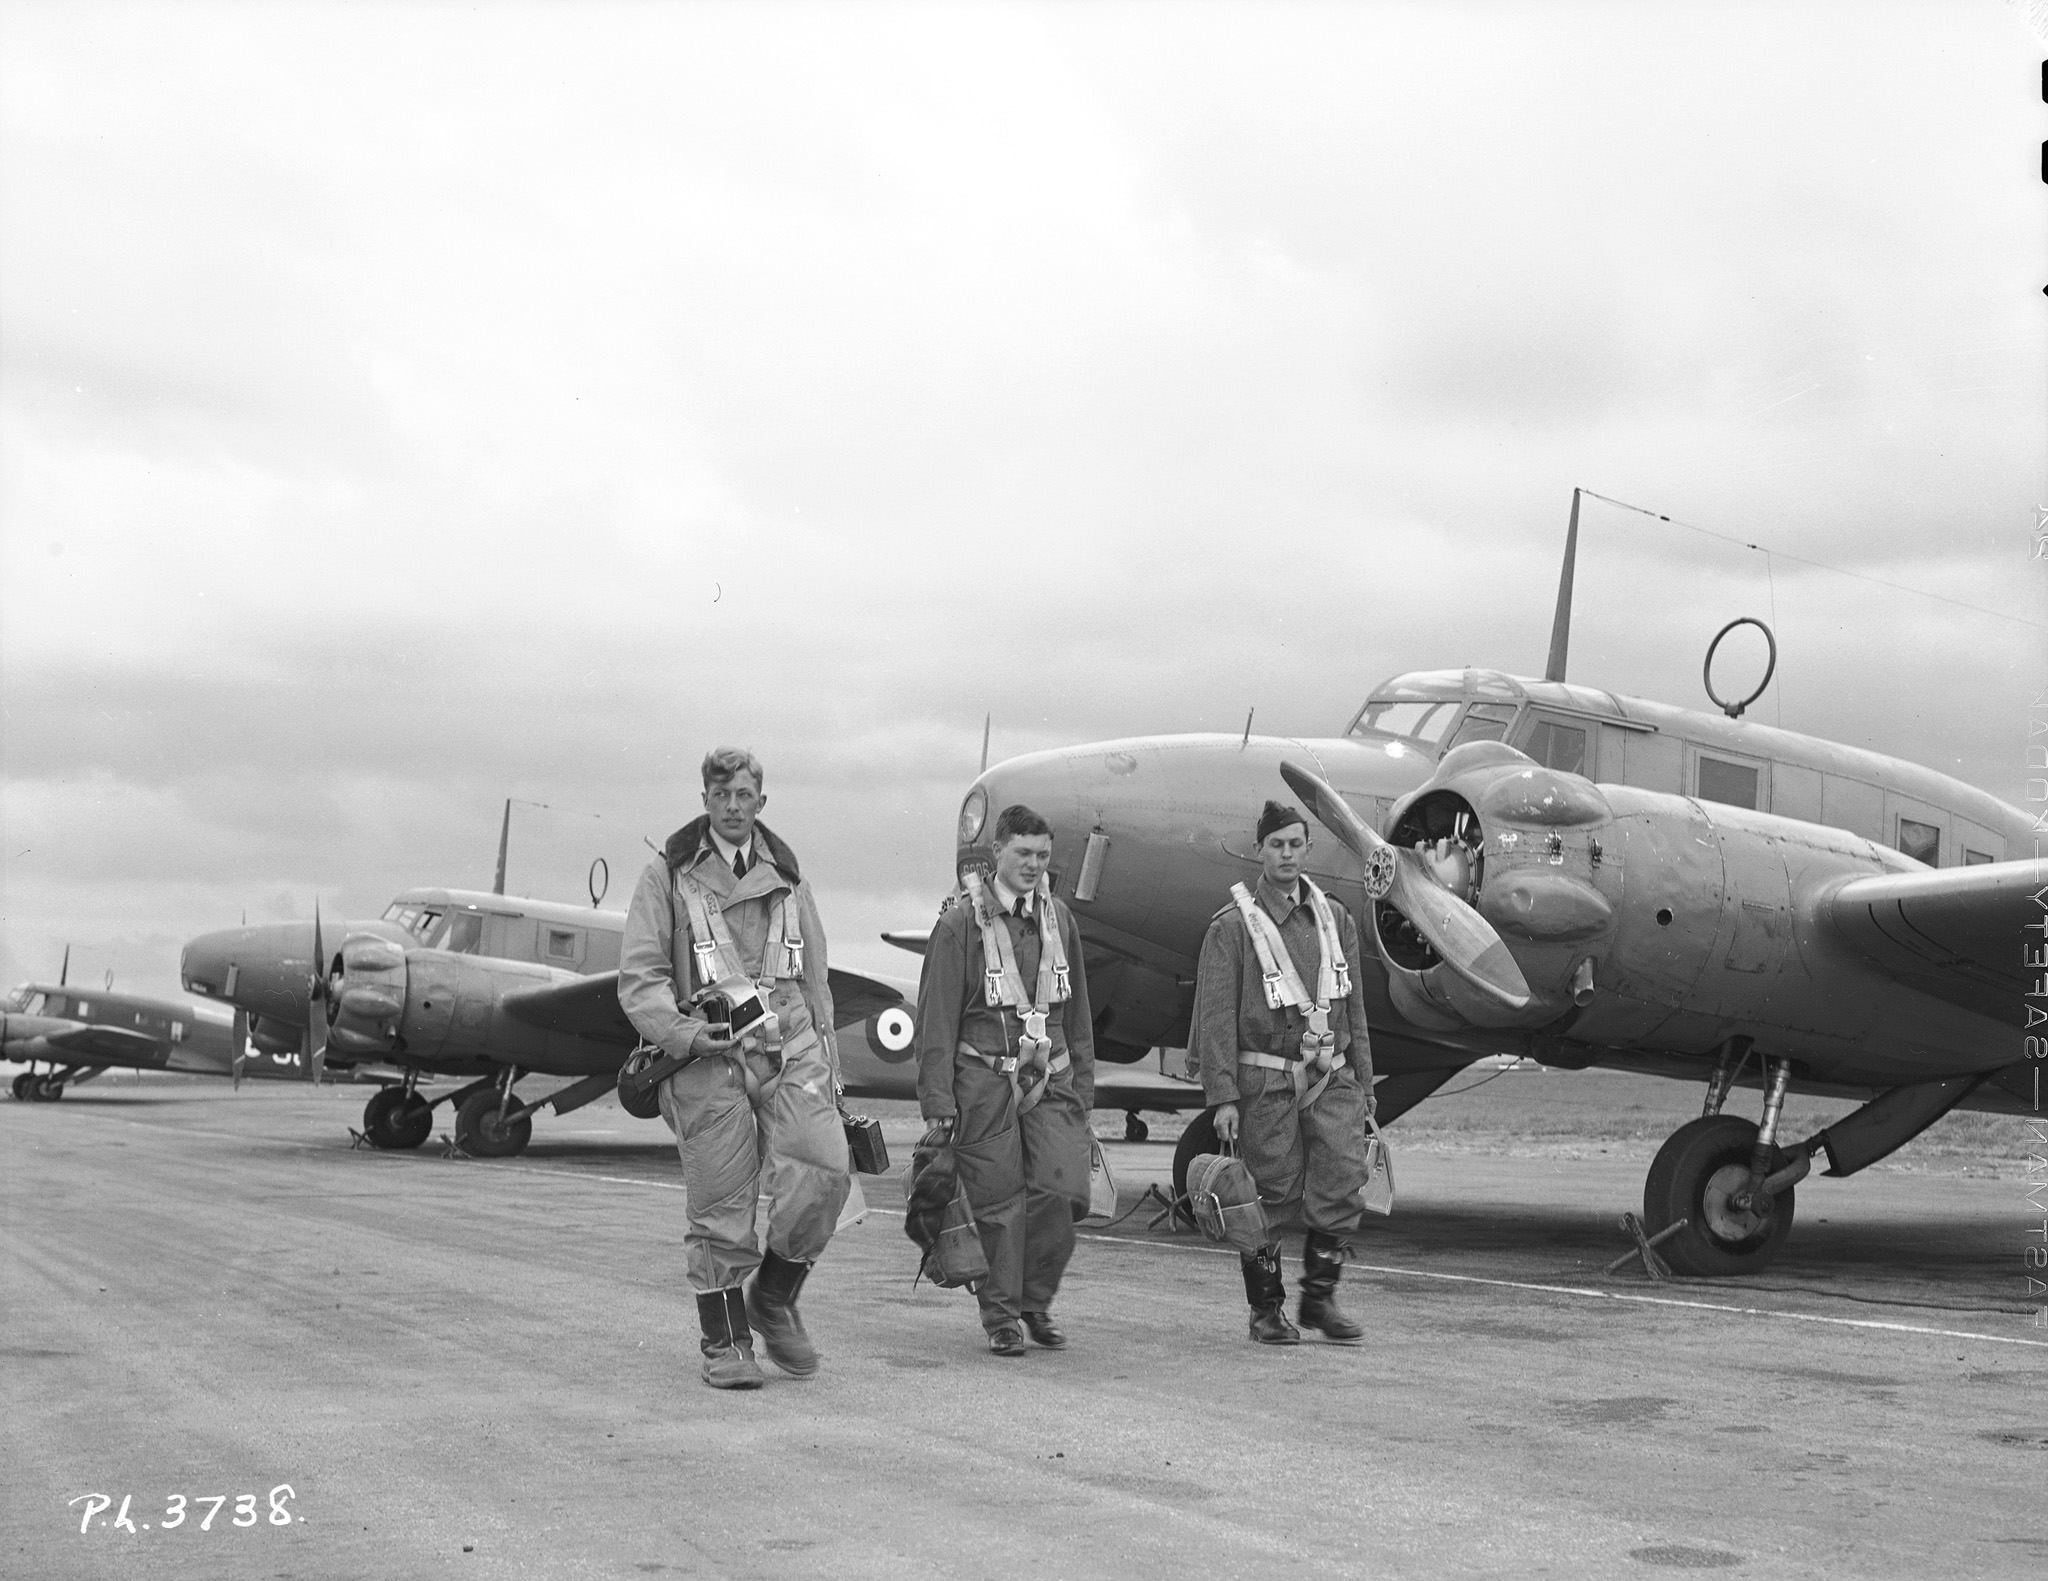 Three airmen walk down a line of Avro Ansons.